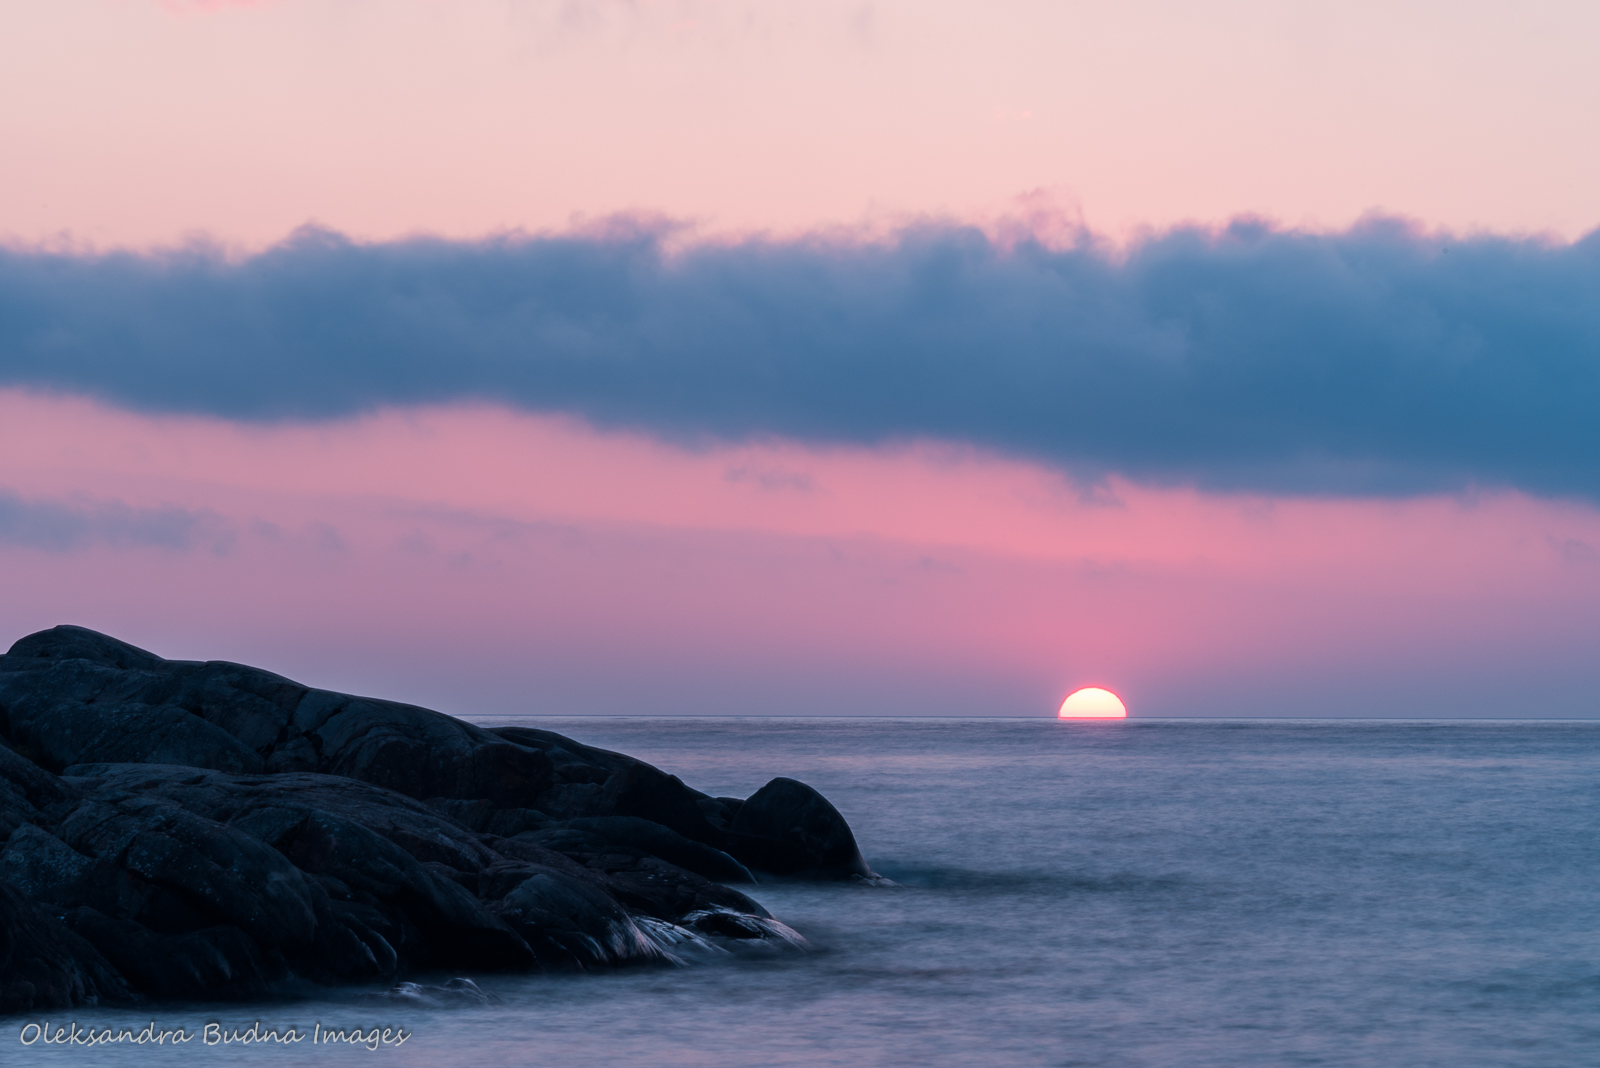 Sunset on Lake Superior at Picture Rock Harbour South in Pukaskwa